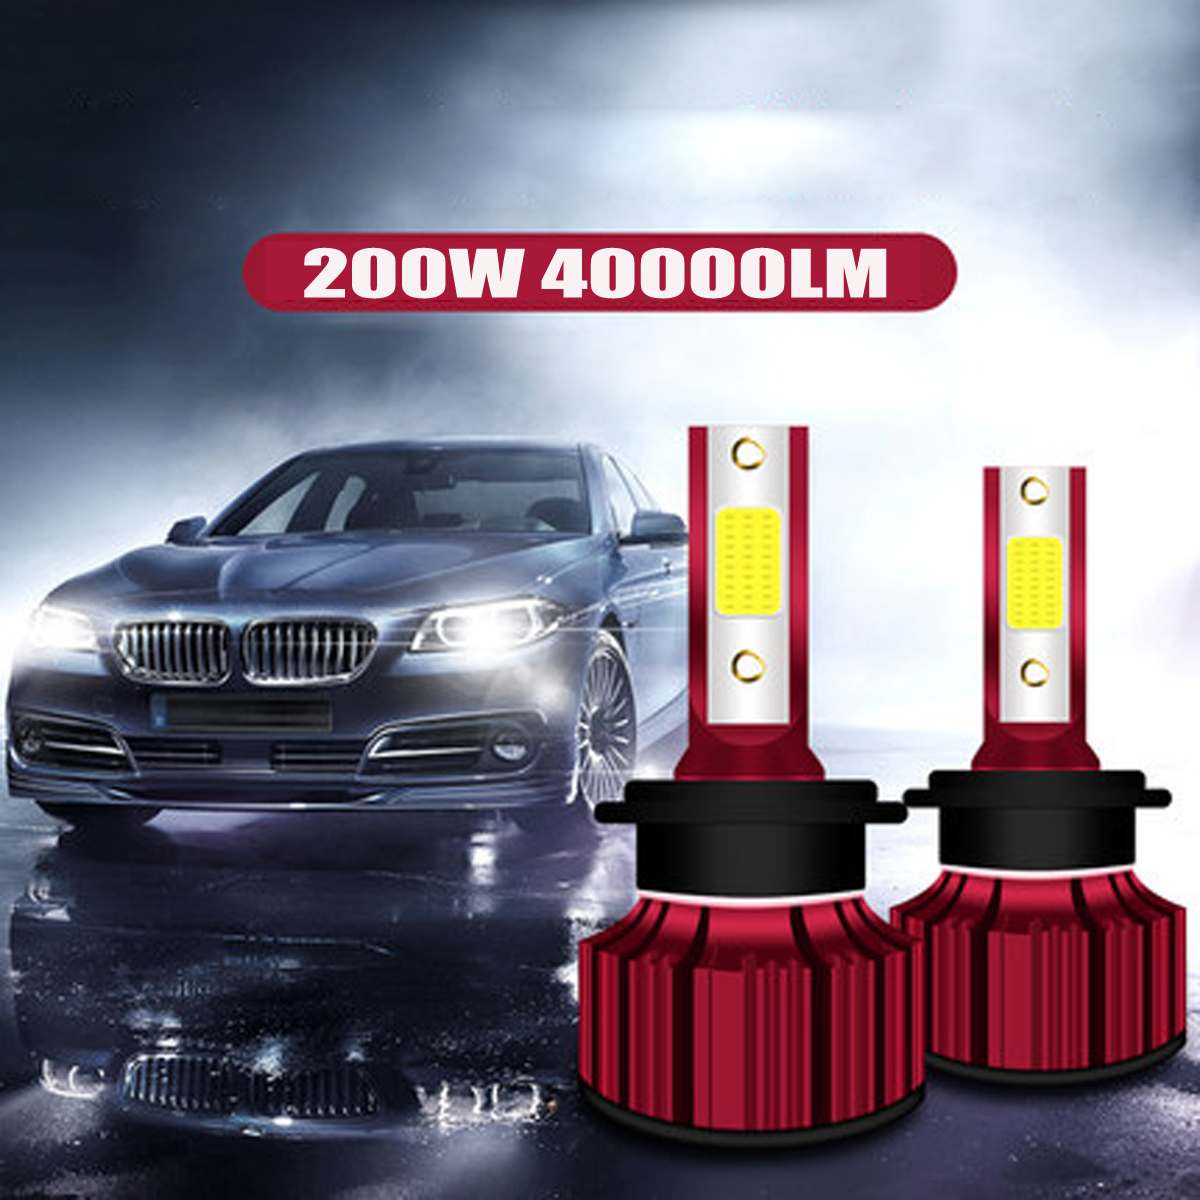 2x 200W 40000LM Car LED Headlight Bubls Mini Headlight Kit For High Power Bulb Fog Light 6000K White H7 H8 H9 H11 H4 9003 HB4